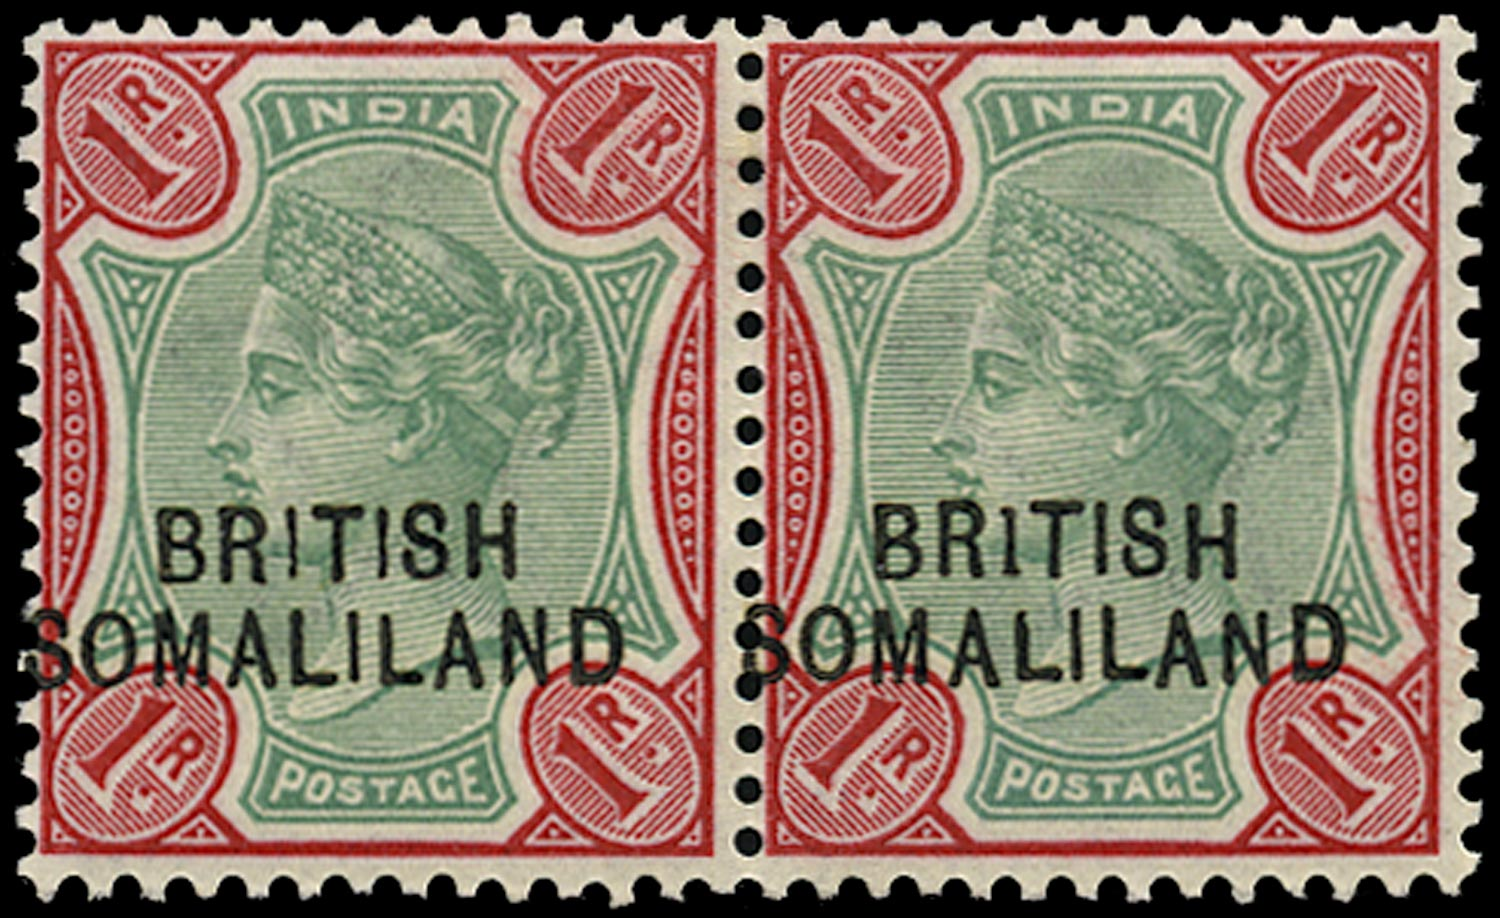 SOMALILAND PROTECT 1903  SG21a Mint QV 1r green and carmine variety BR1TISH